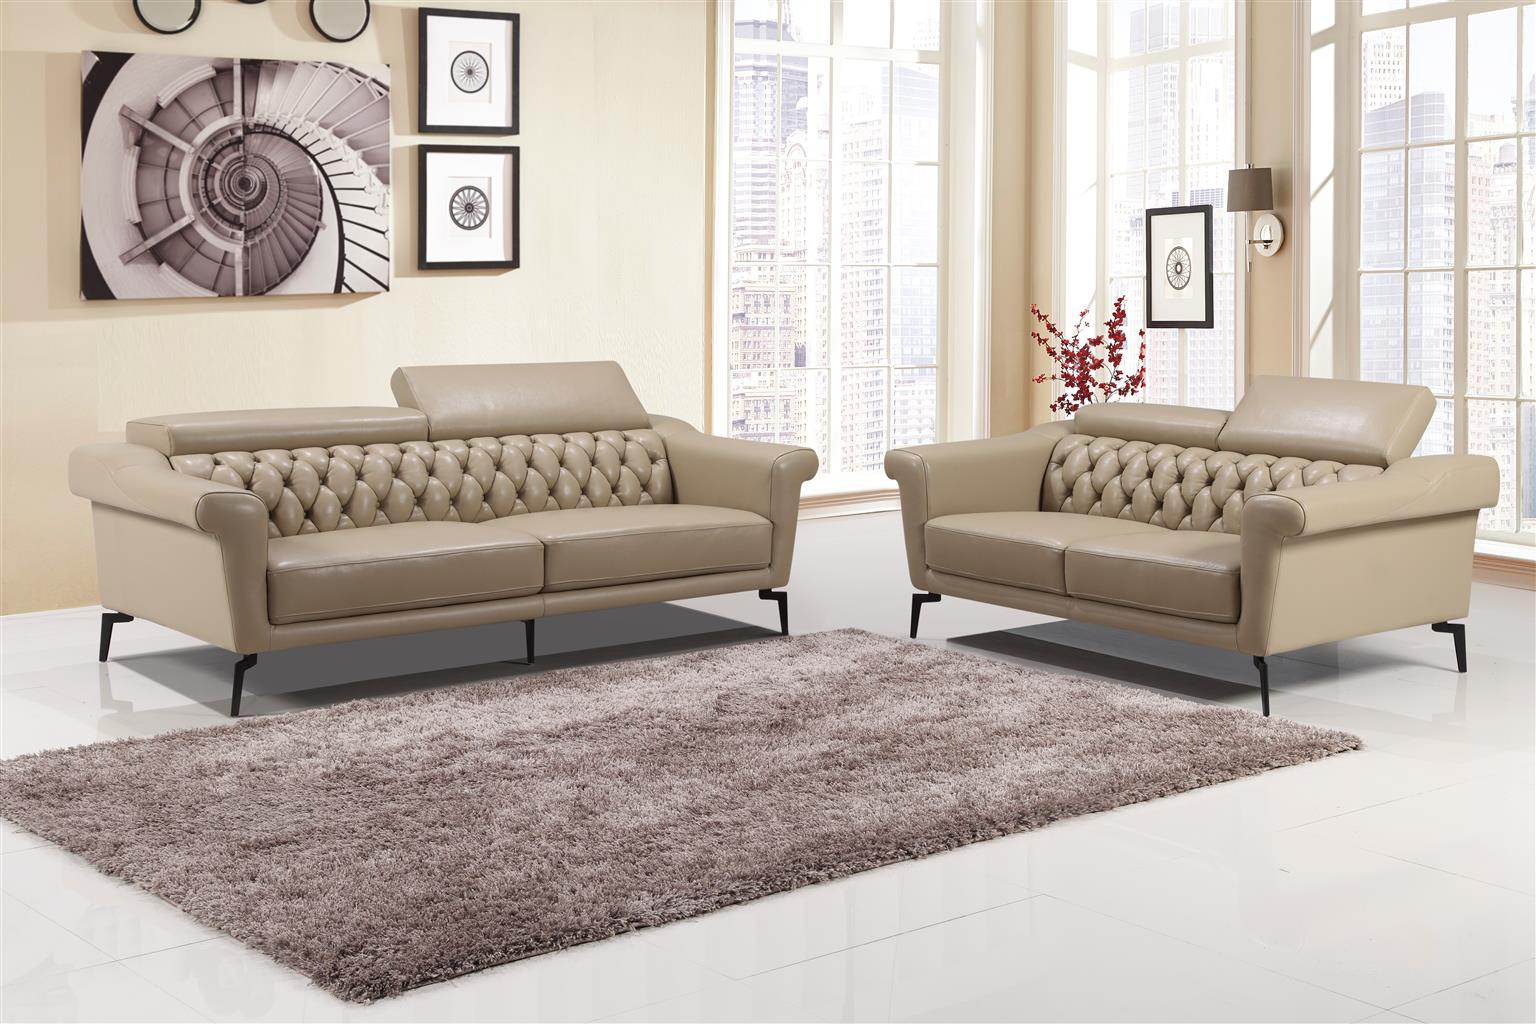 LOUNGE SUITE BRAND NEW CHESTERFIELD 2&3 SEATER FOR ONLY R 12 499!!!!!!!!!!!!!!!!!!!!